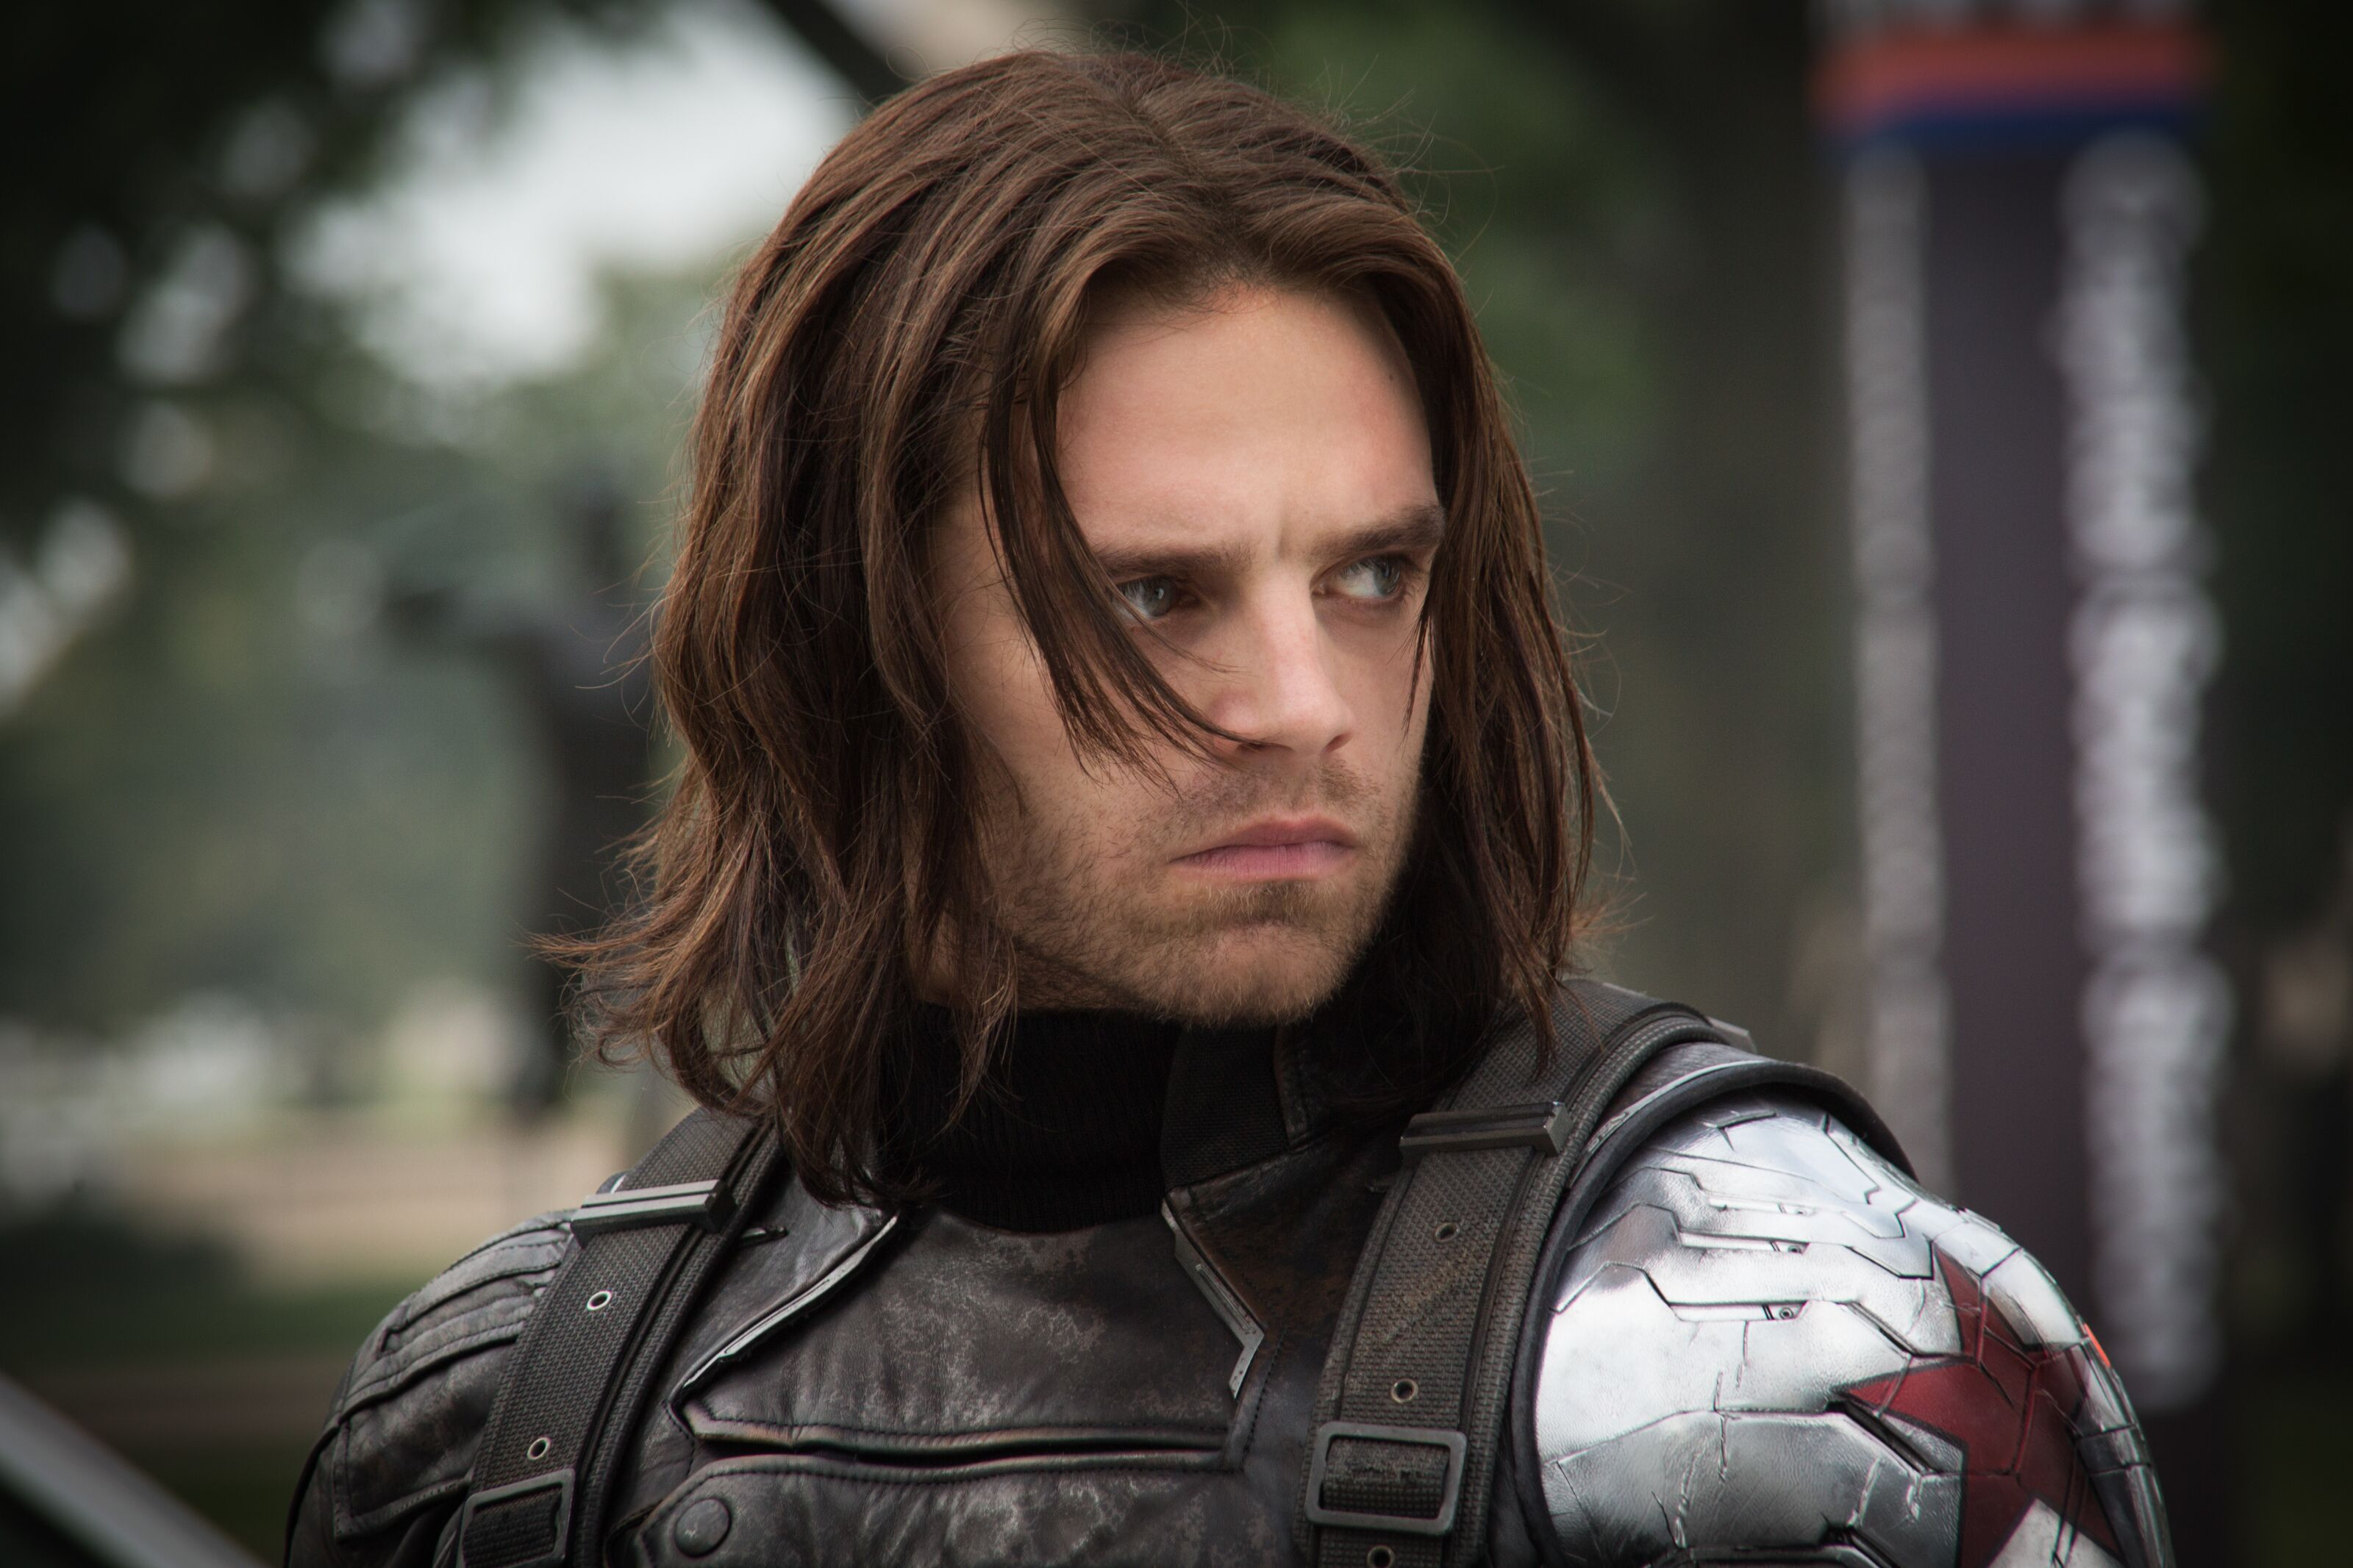 Sebastian Stan suggests a new look might be in store for the Winter Soldier